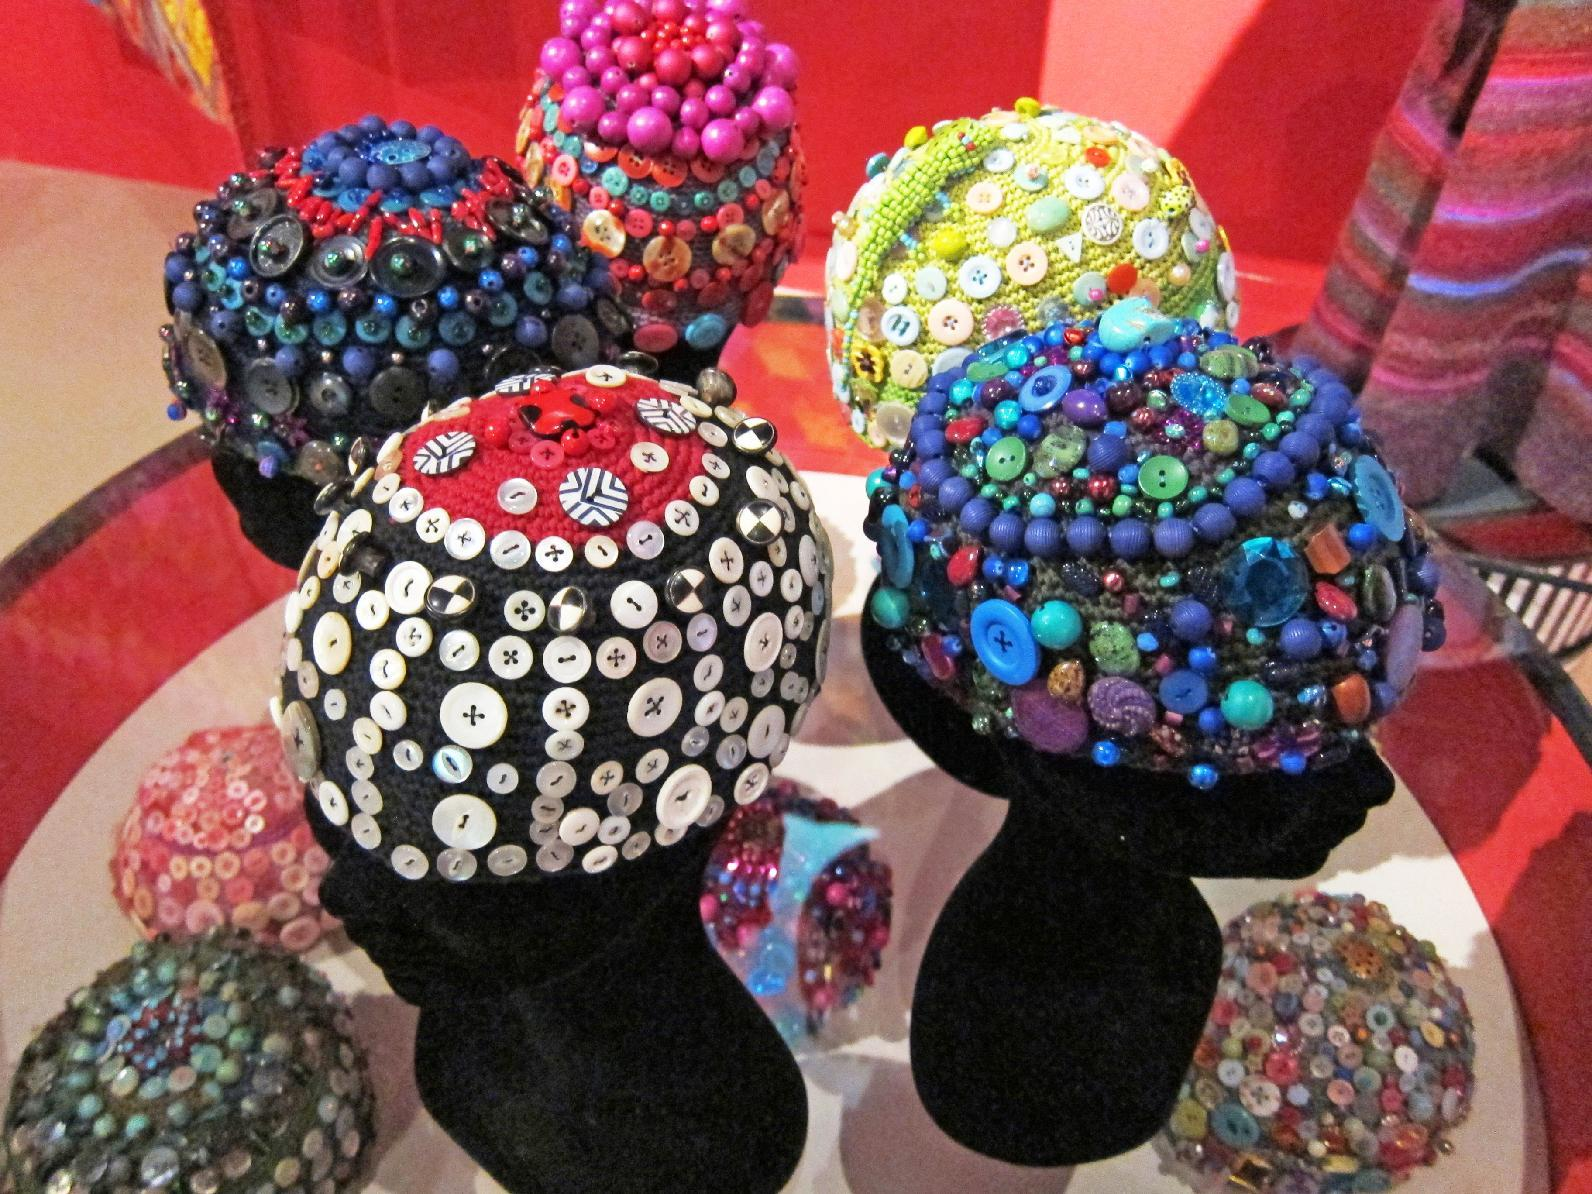 """This publicity photo provided by Kaffe Fassett Studio shows textile artist Kaffe Fassett's crocheted skull caps, which are embellished with buttons and beads. Dozens of similar caps appeared in the show """"Kaffe Fassett: A Life in Colour"""" recently at the Fashion and Textile Museum in London. Today's crochet is leaner and trendier than that of the 1960s and '70s, from which we know it for its bulky, acrylic yarns and Afghan blankets. (AP Photo/Kaffe Fassett Studio)"""